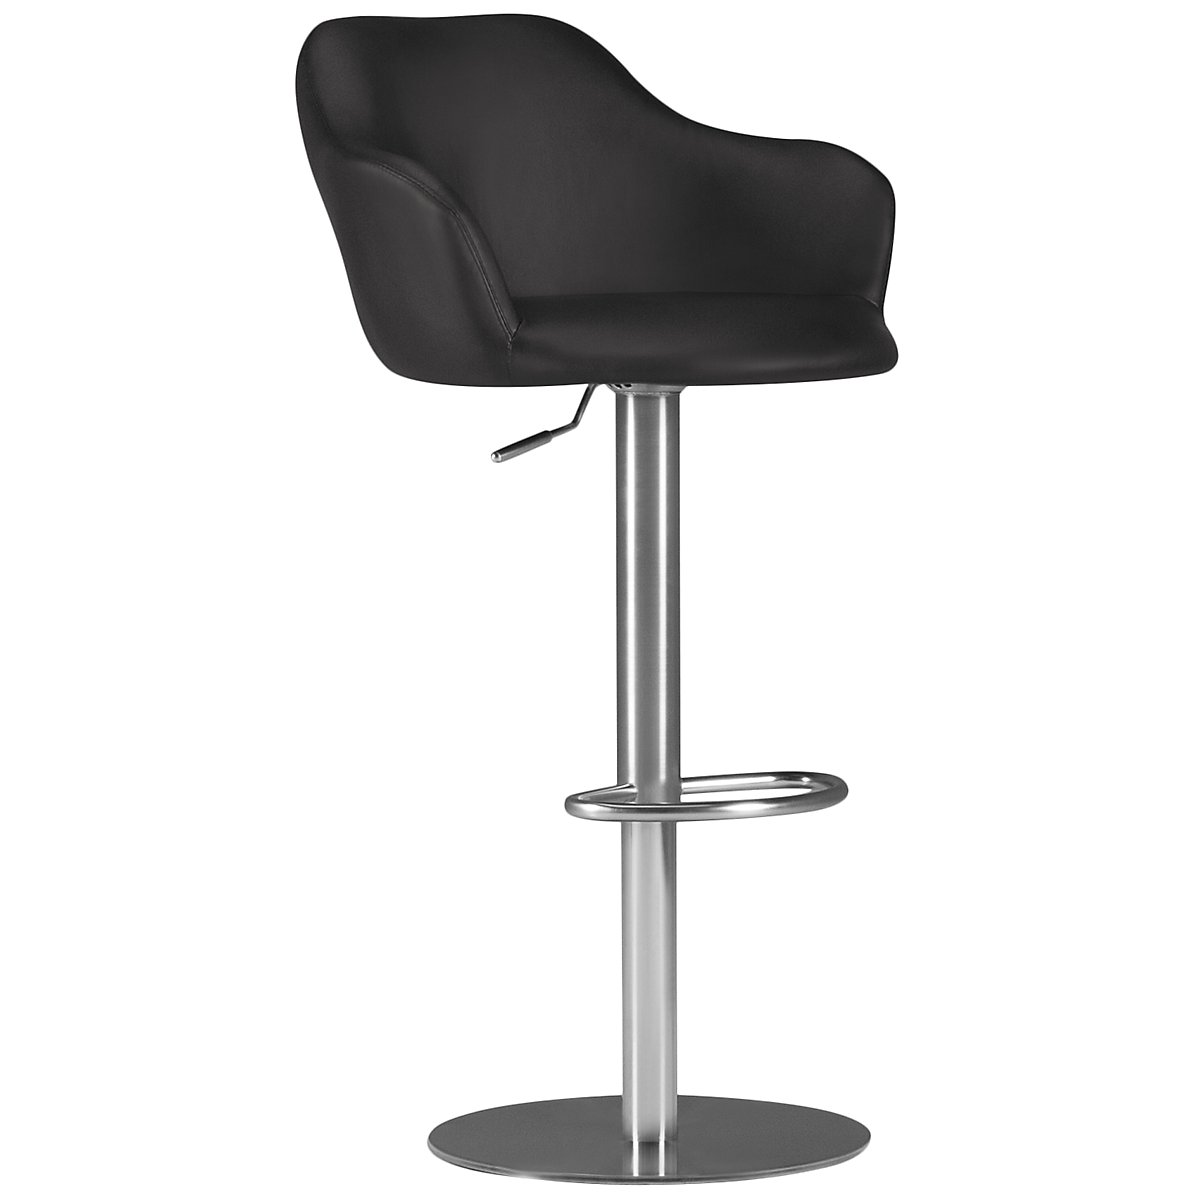 Hyde Black Upholstered Adjustable Stool